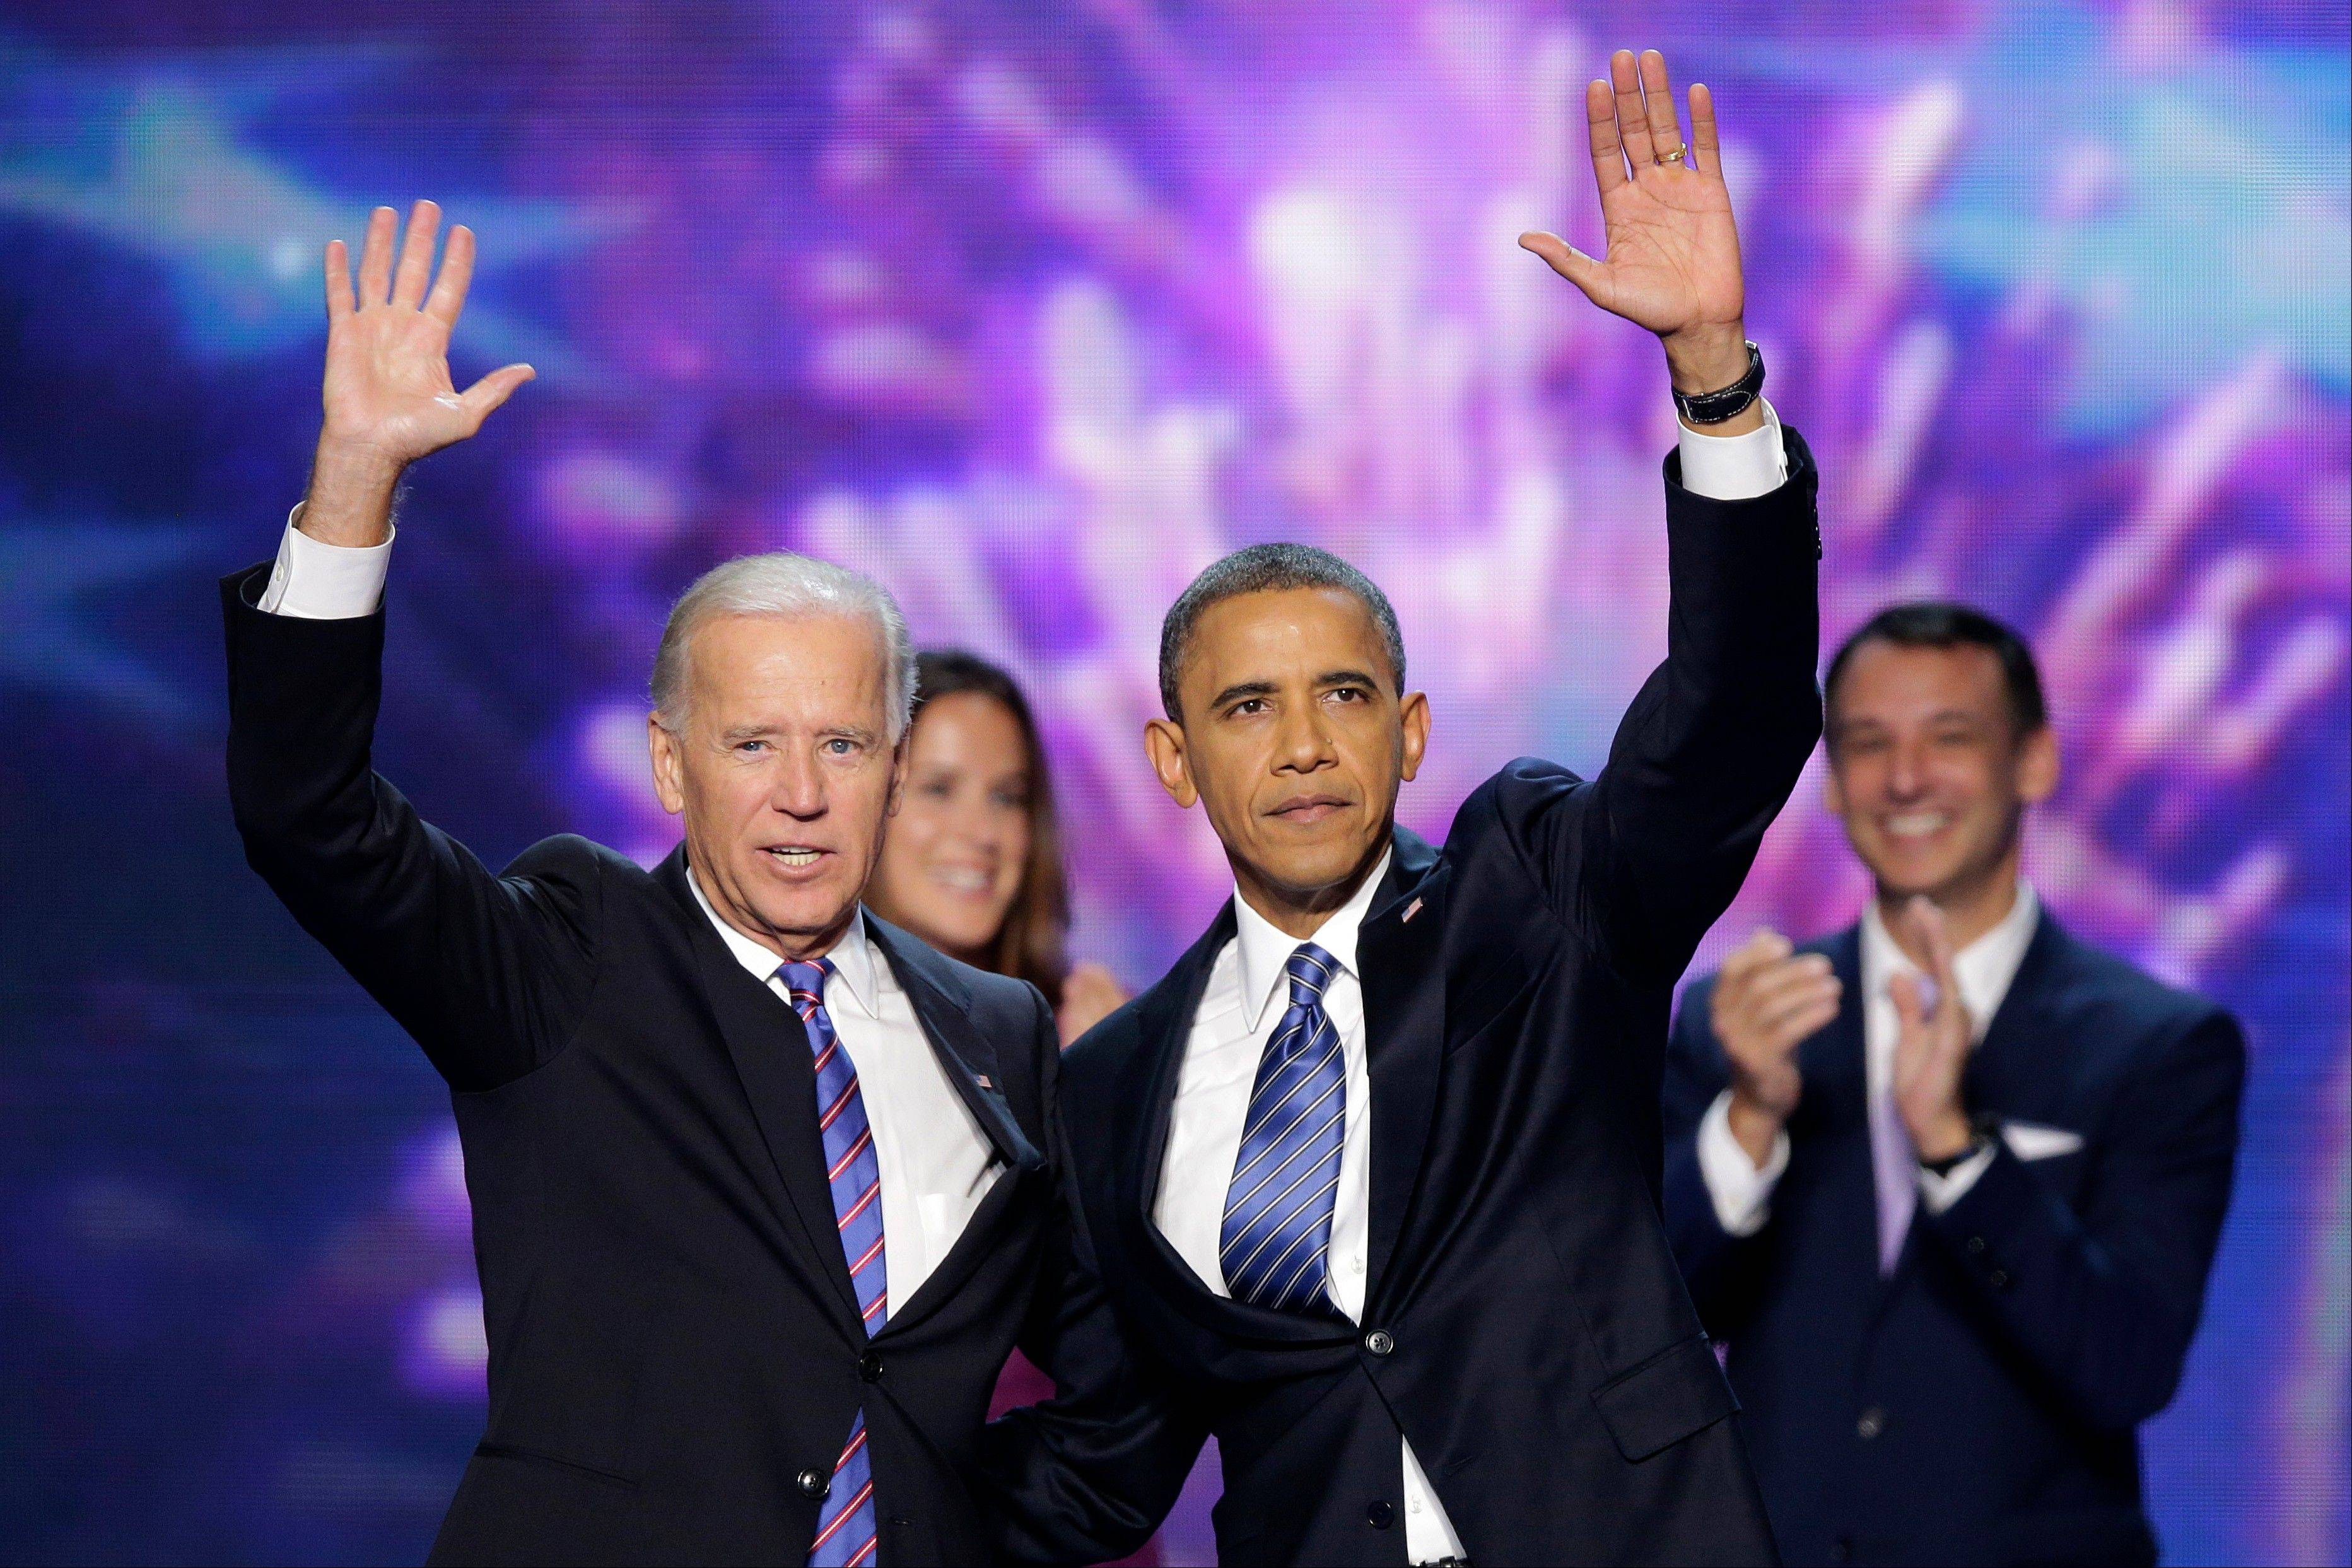 Vice President Joe Biden and President Barack Obama wave to the delegates at the conclusion of Presdident Obama's speech at the Democratic National Convention in Charlotte, N.C., on Thursday.